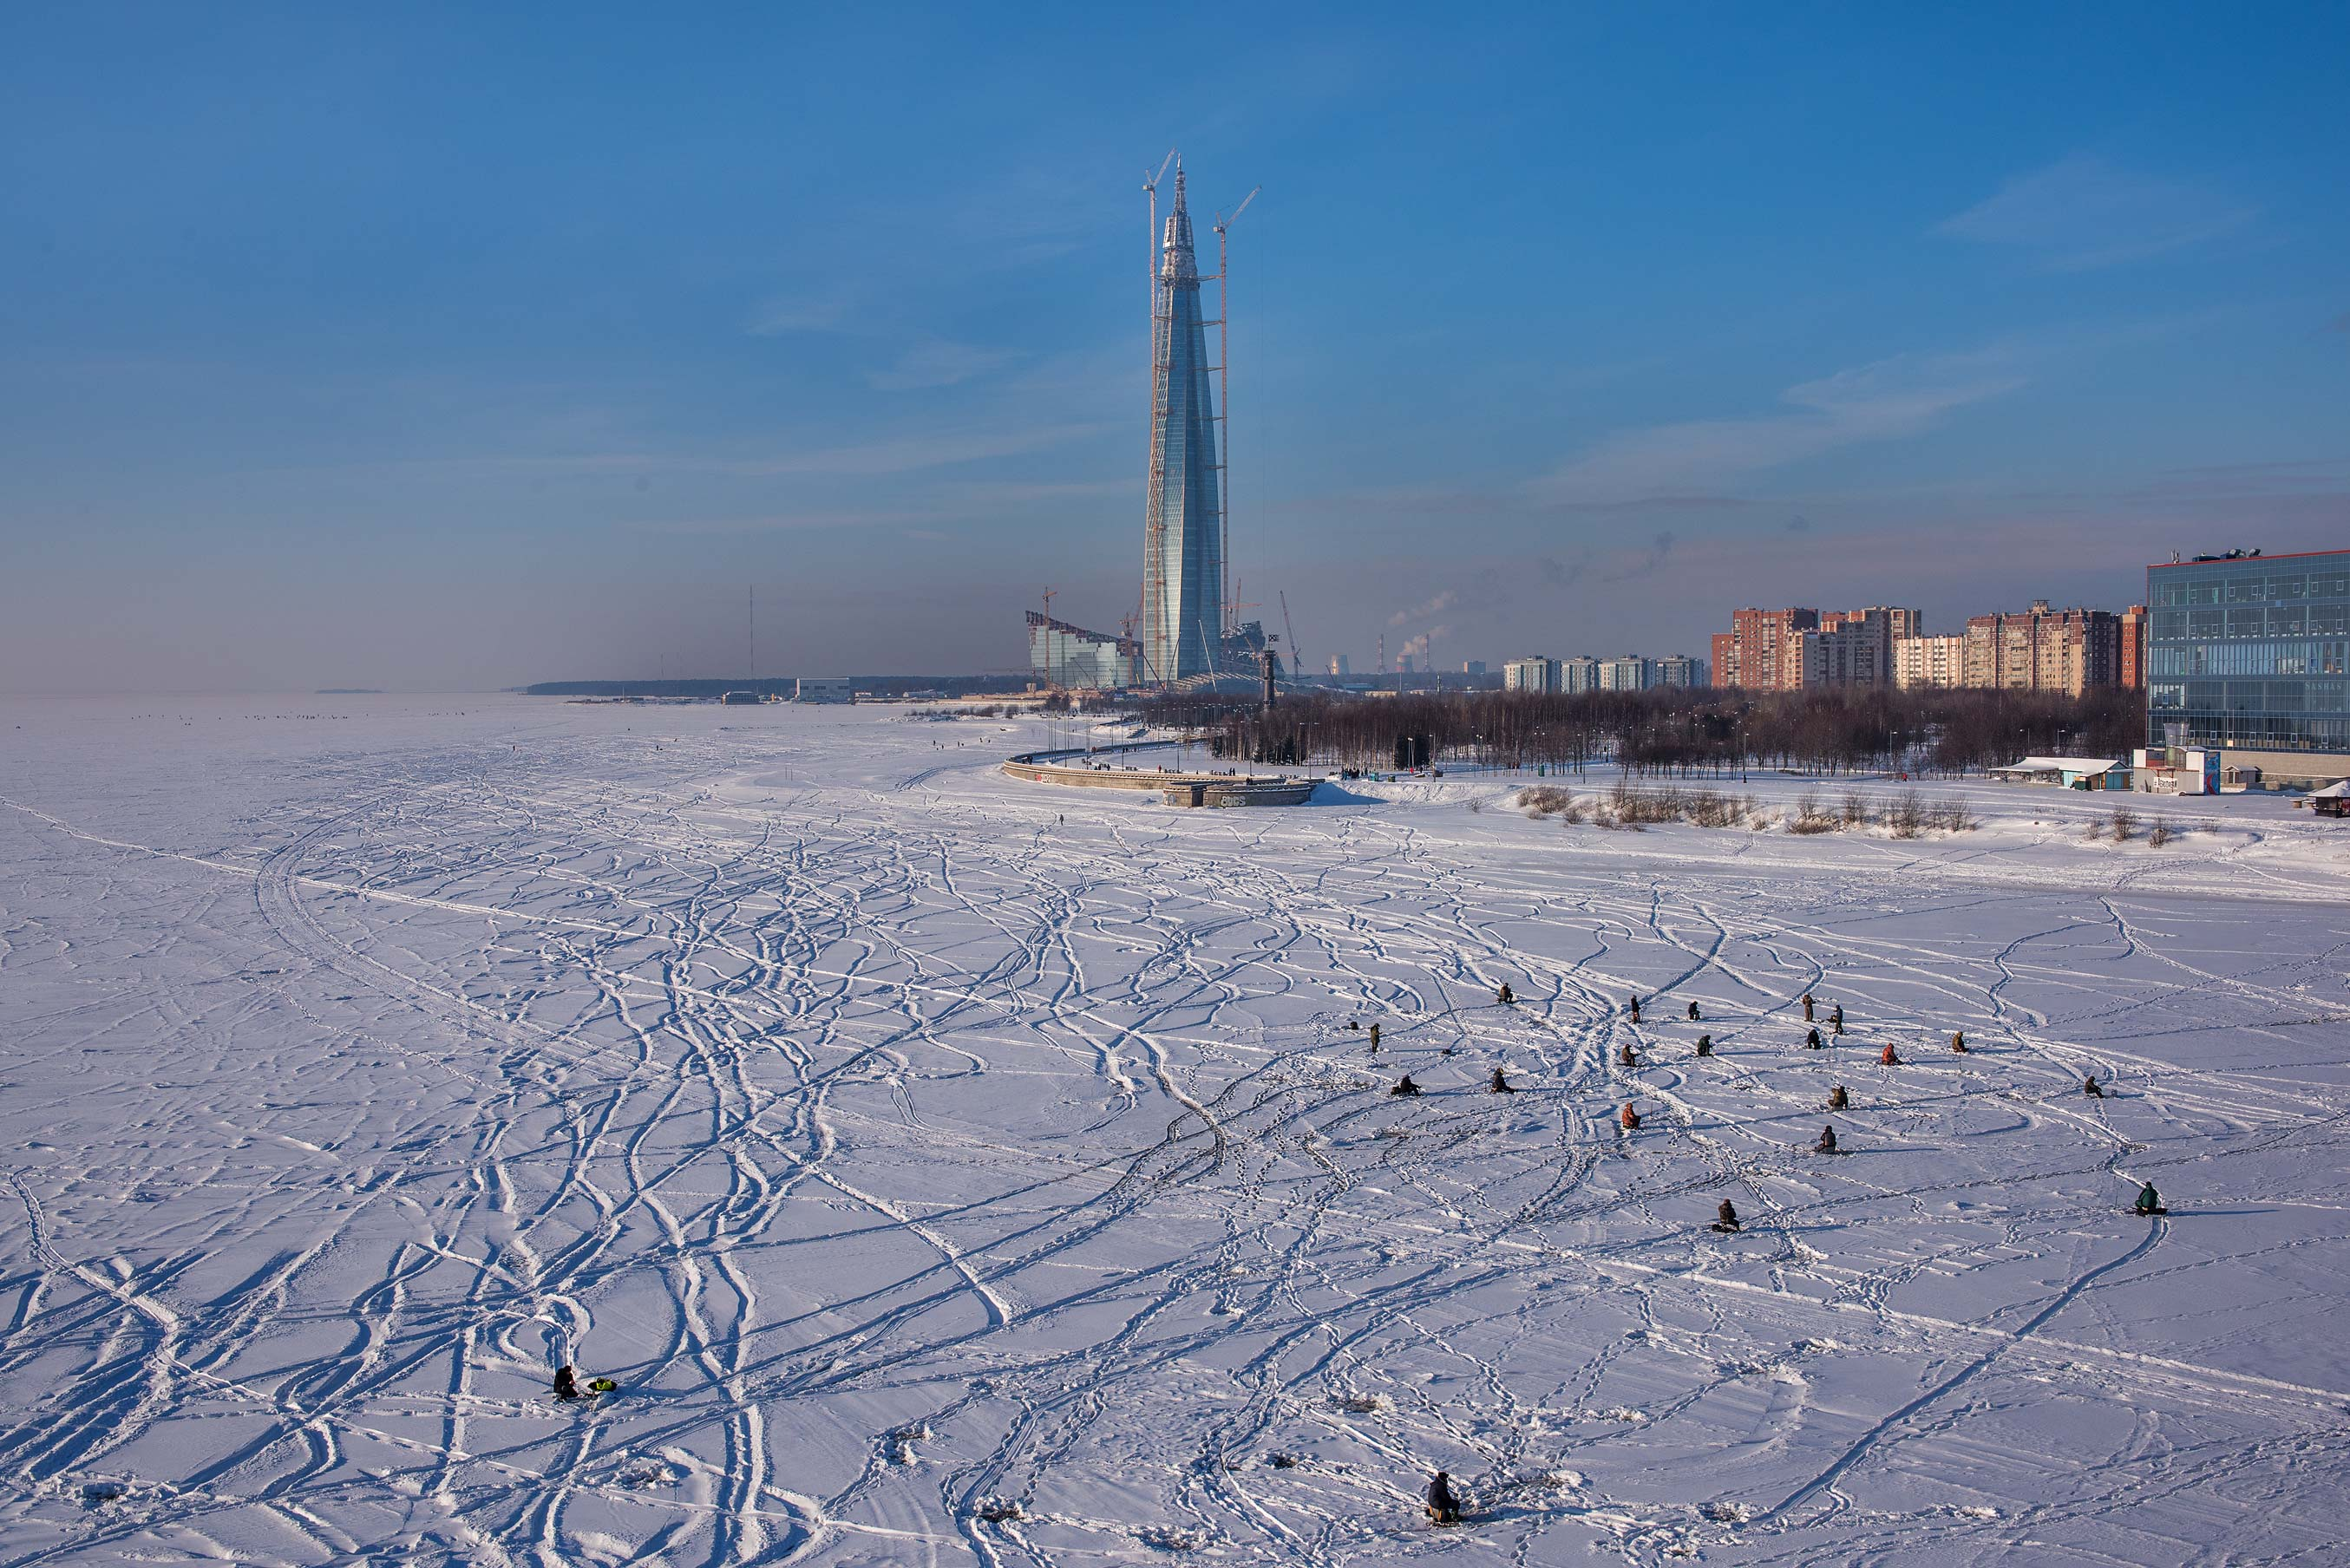 Ice fishing on Sobakina Flats from Yakhtenny Bridge. St.Petersburg, Russia